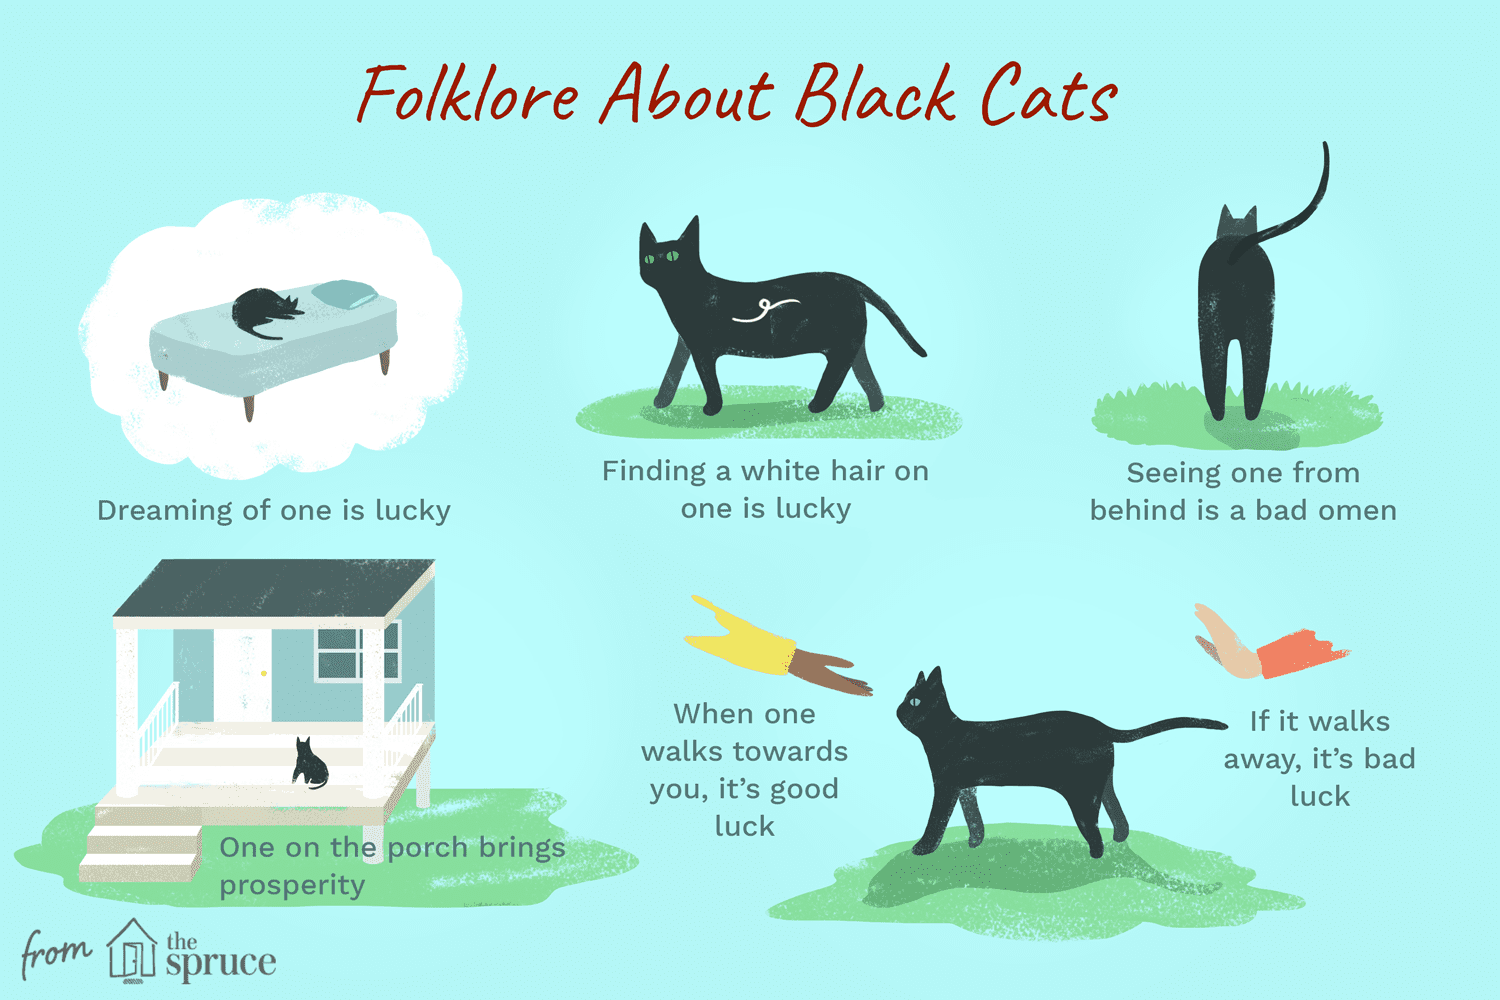 Longtime Superstitions About Black Cats